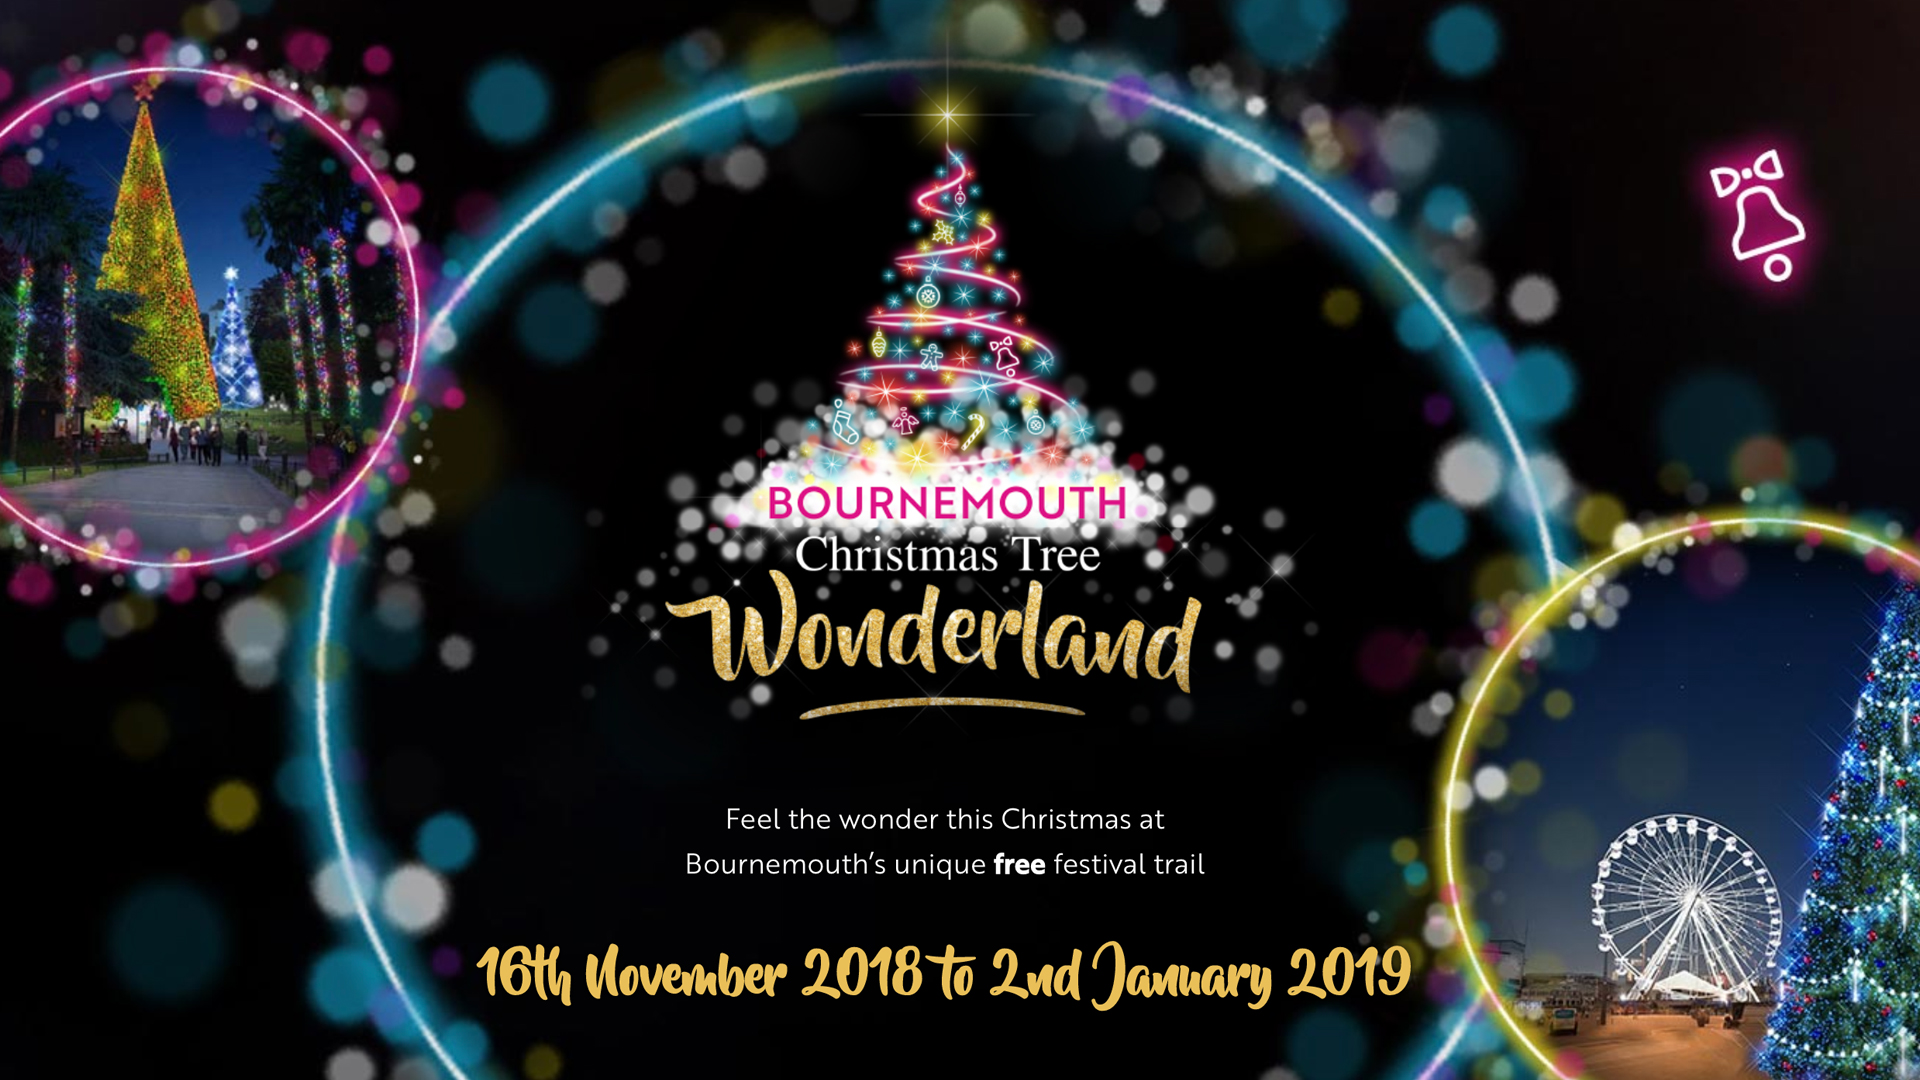 Christmas Tree Wonderland Bournemouth 16th Nov 2018 2nd Jan 2019